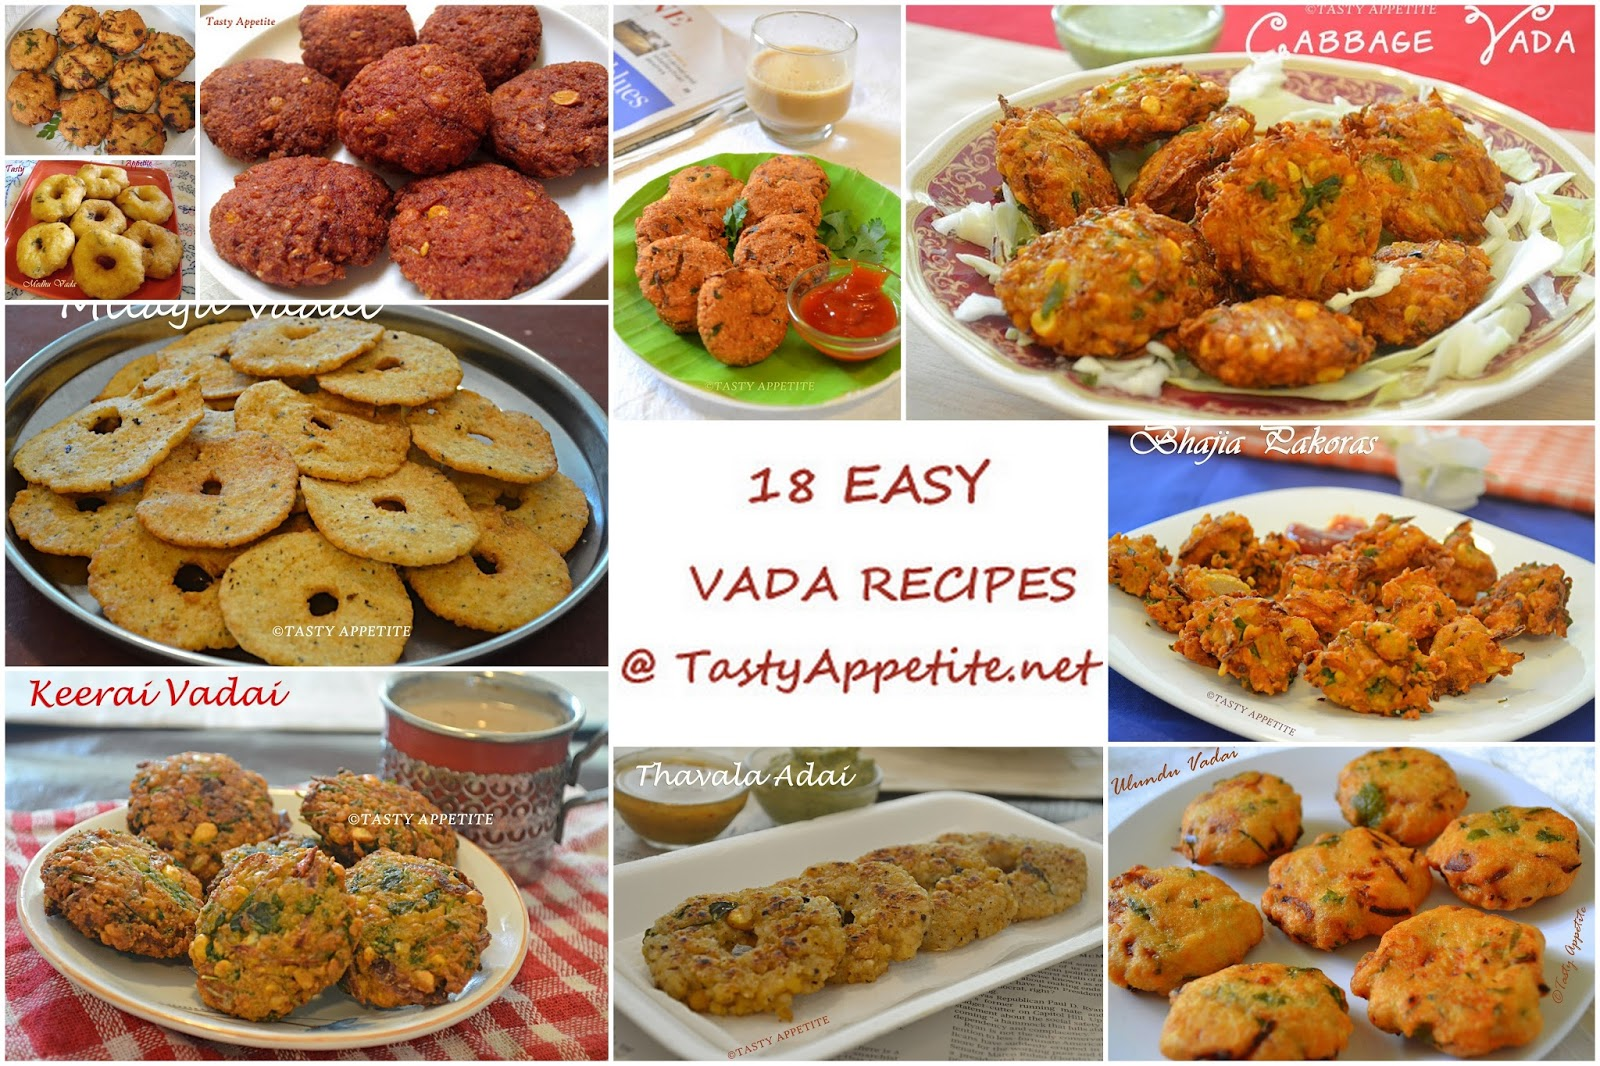 18 easy vada recipes south indian vadai recipes healthy snack 18 easy vada recipes south indian vadai recipes healthy snack recipes forumfinder Images